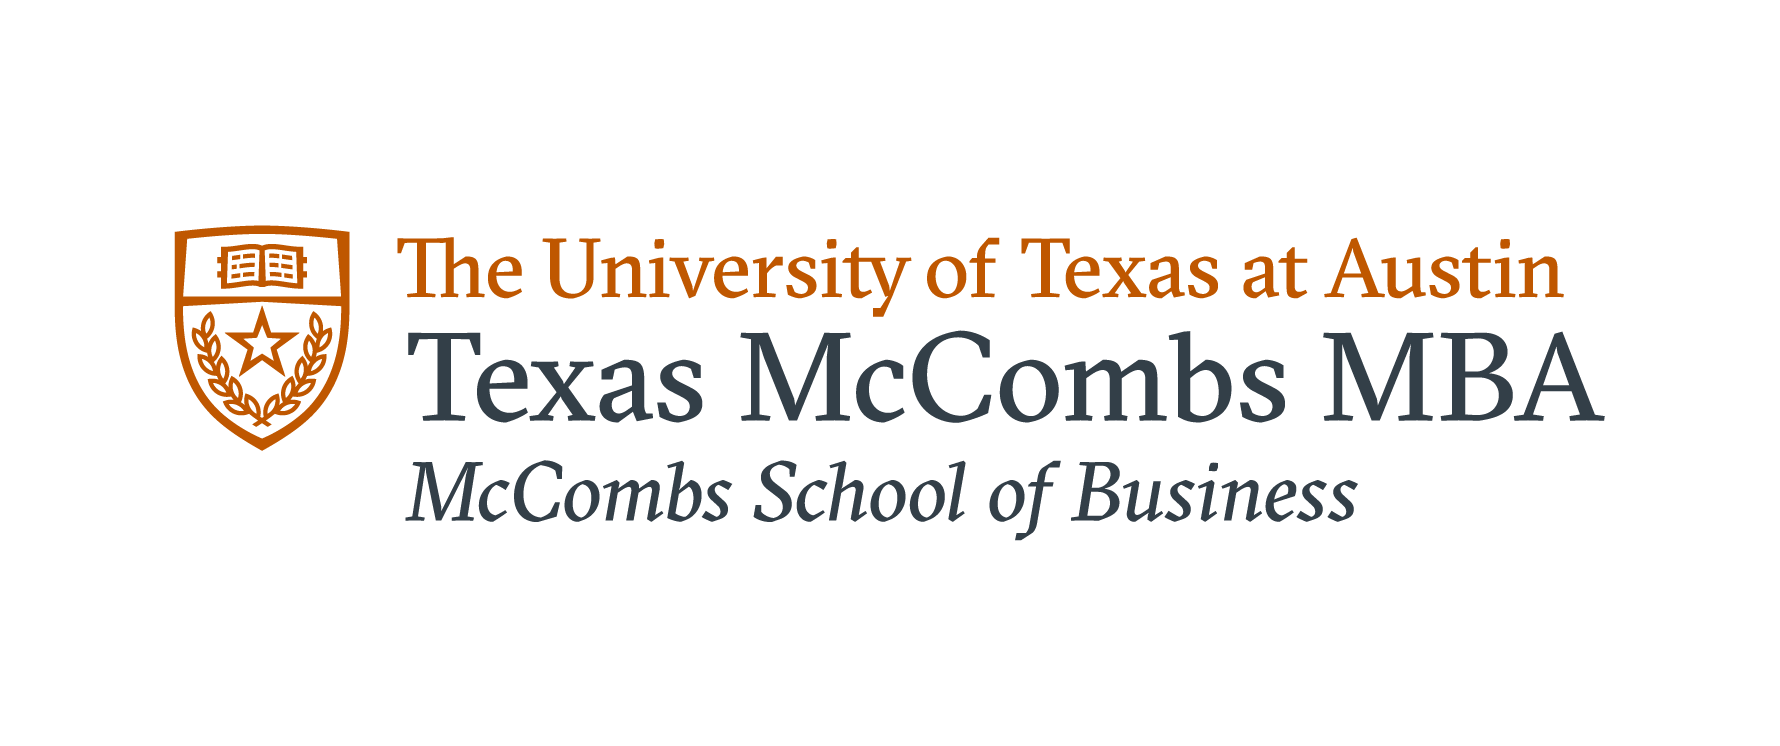 MBAdream.in students who have got admitted to the Texas Mccombs MBA  program.